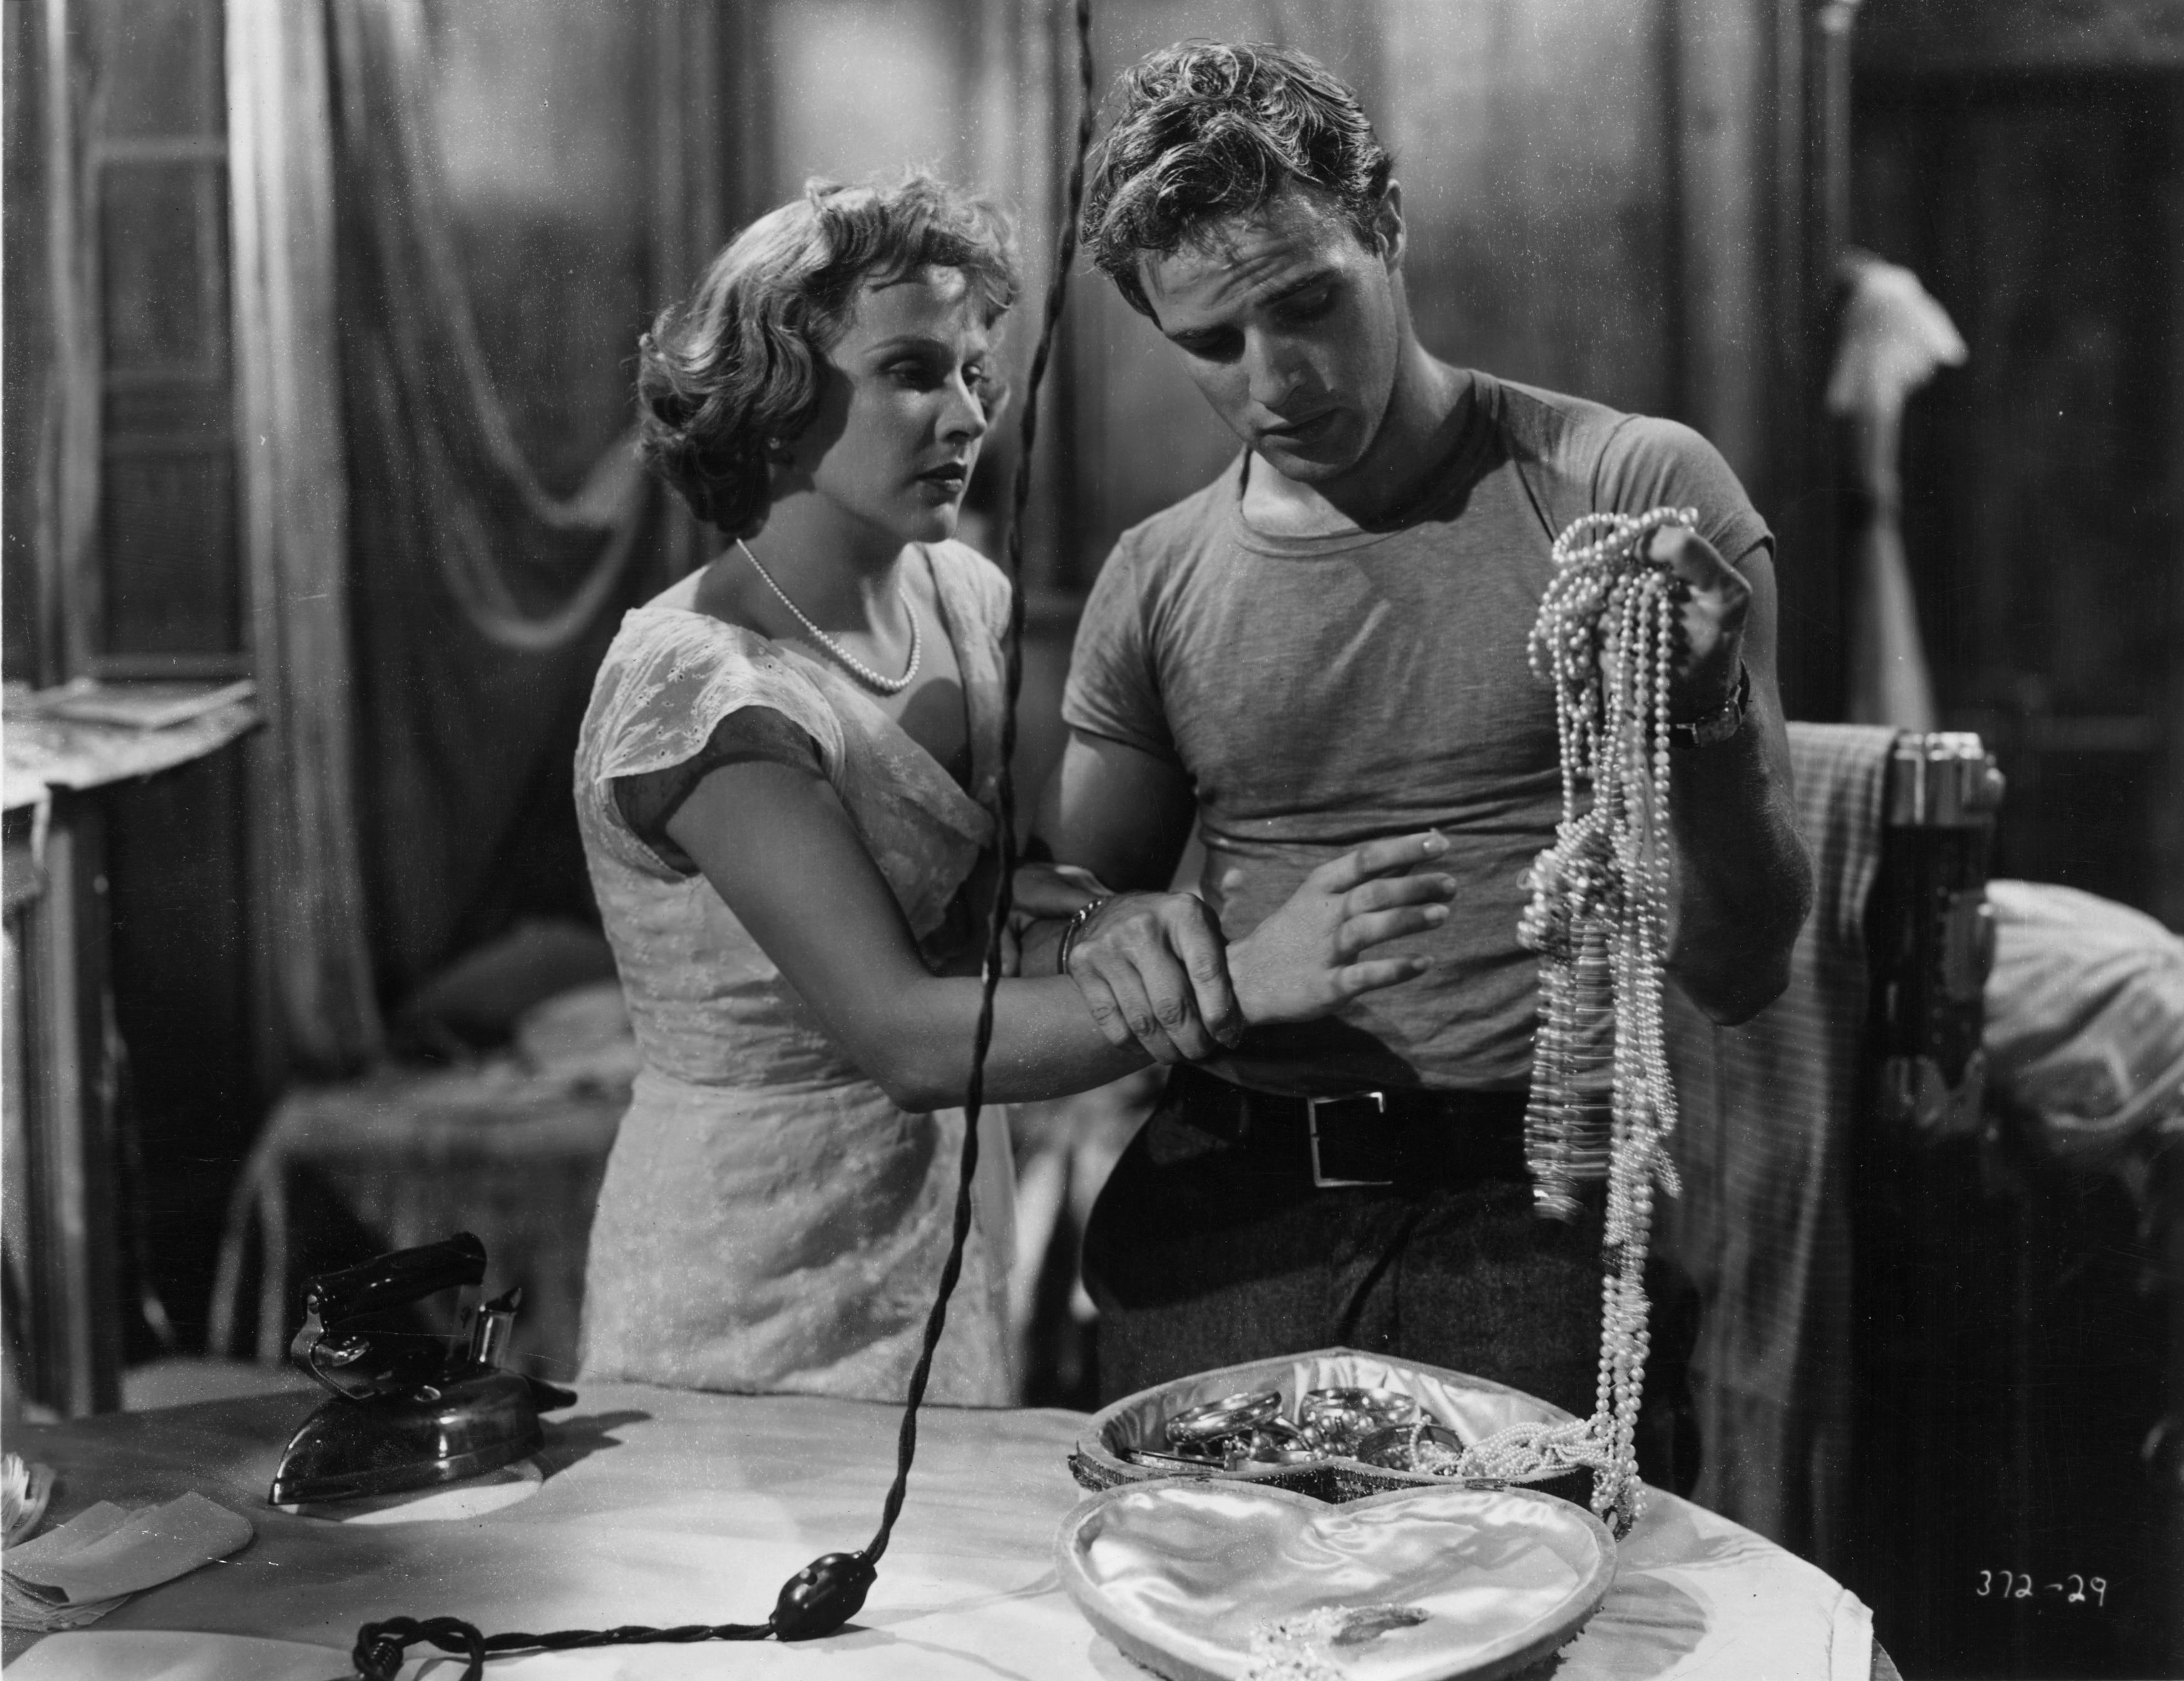 The Really Popular Bookclub: A Streetcar Named Desire